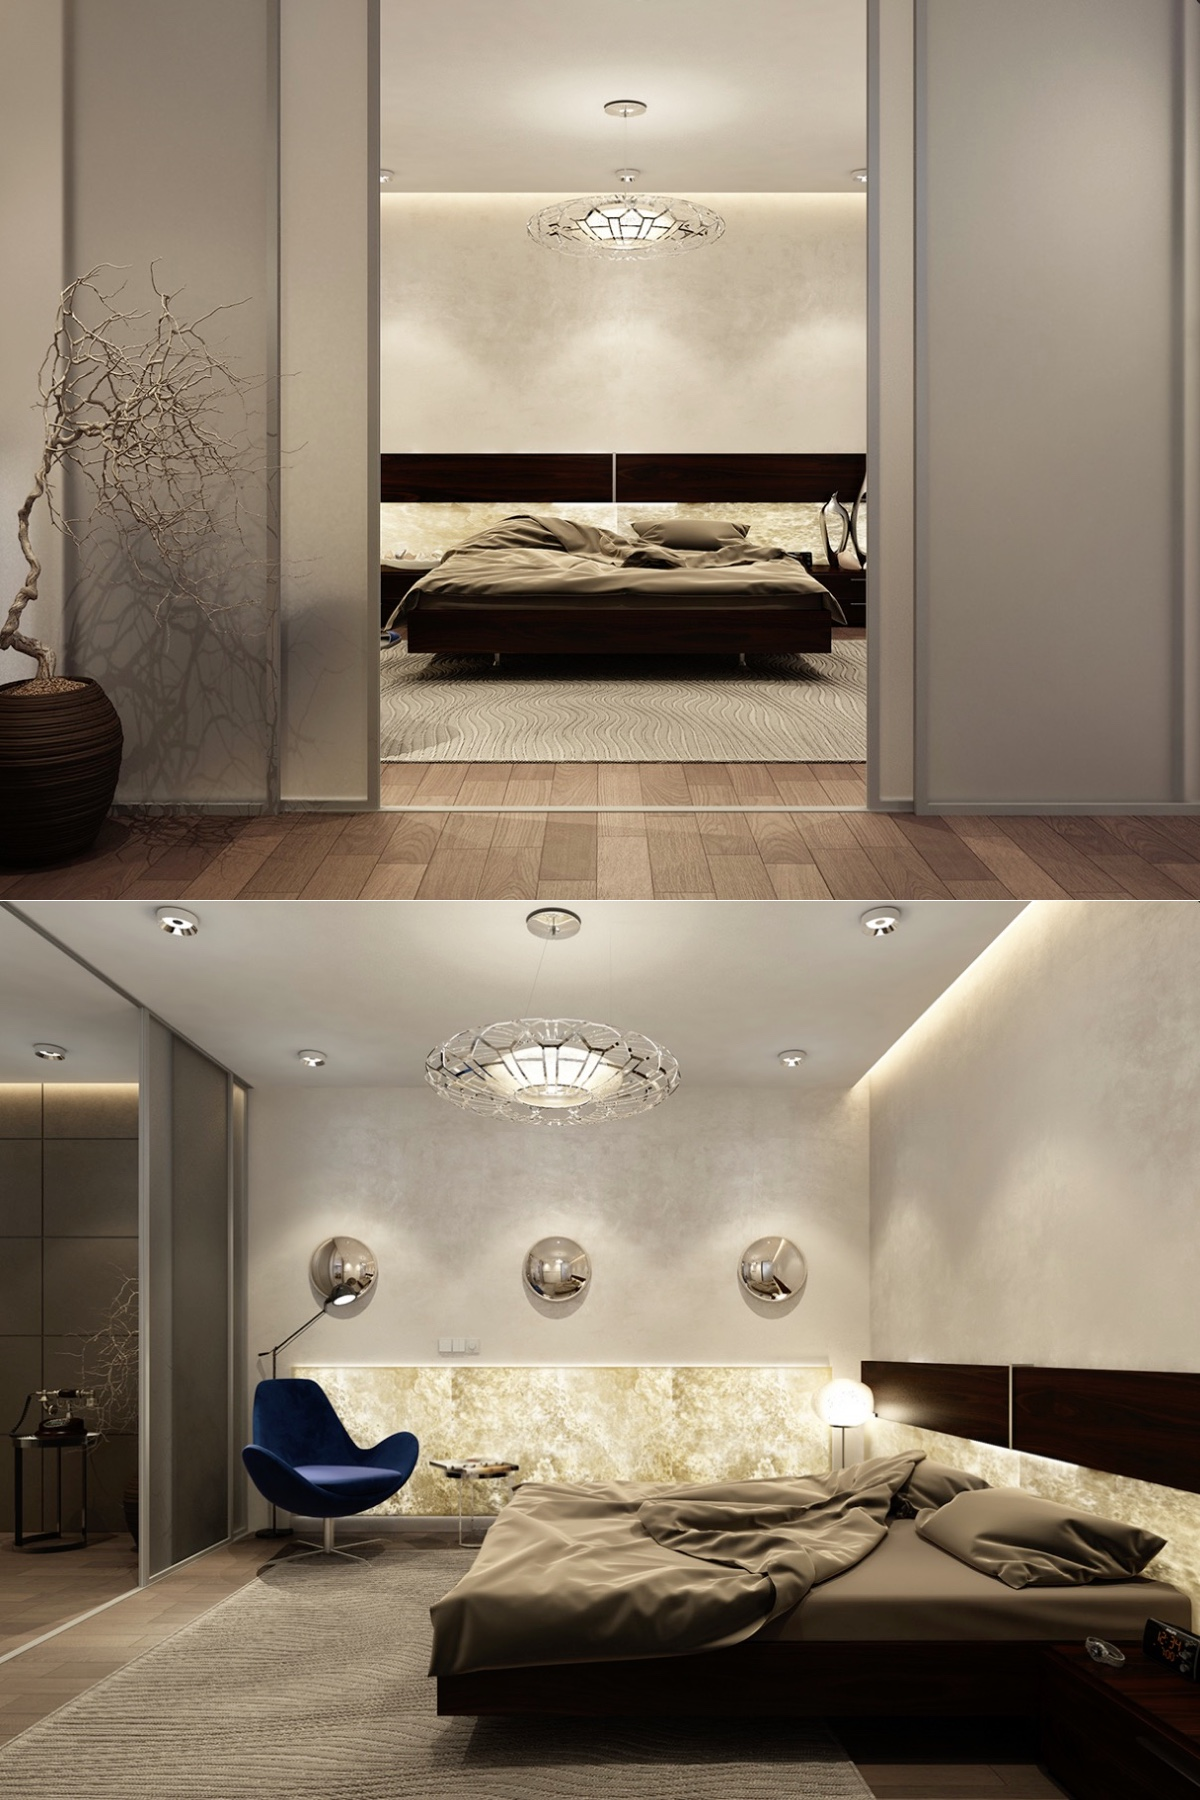 21 cool bedrooms for clean and simple design inspiration rh home designing com